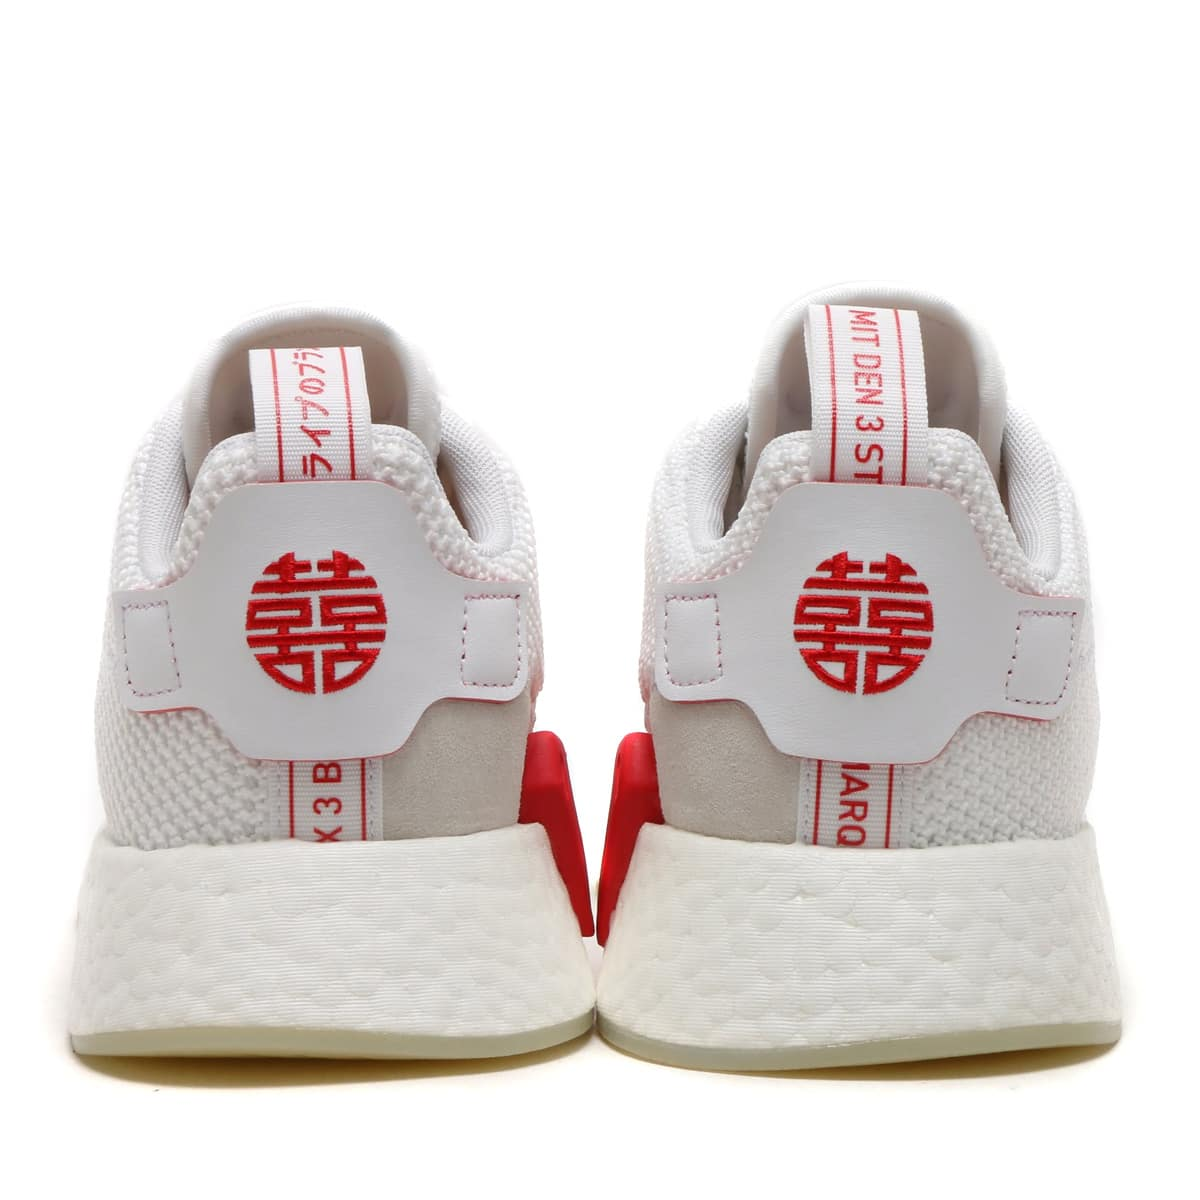 finest selection fc8c6 77532 adidas Originals NMD_R2 CNY Running White/Running White/Scarlet